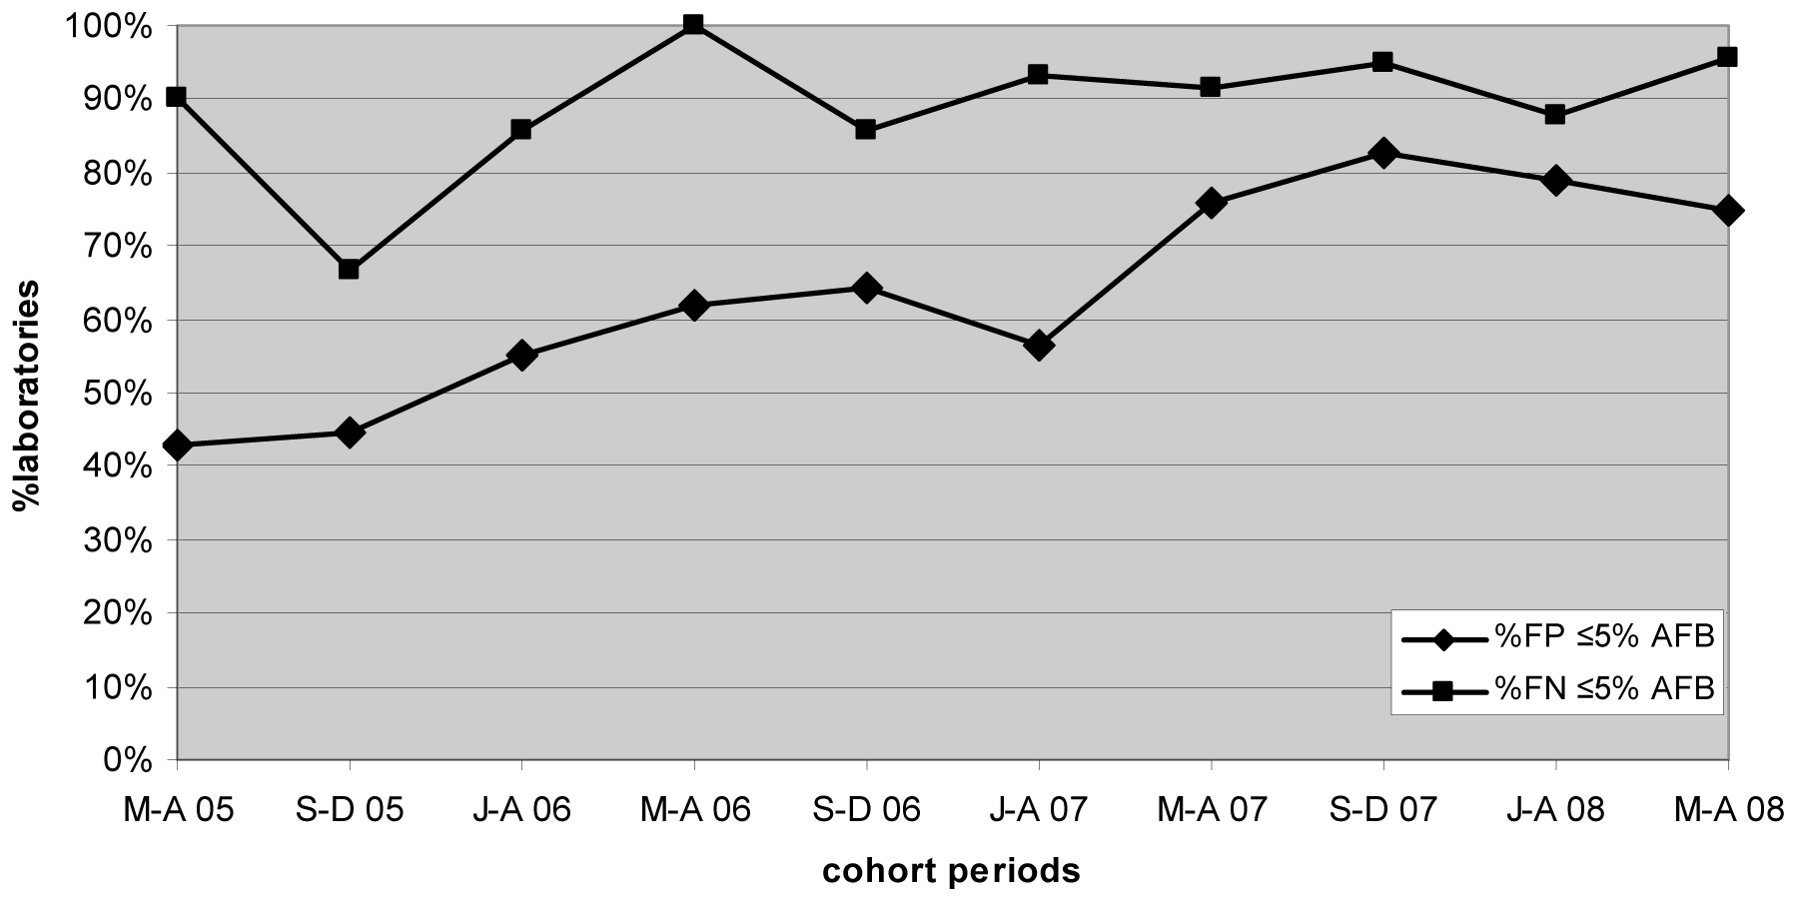 Percentage of laboratories and test centers achieving ≤5% false-positive and false-negative results for AFB microscopy.